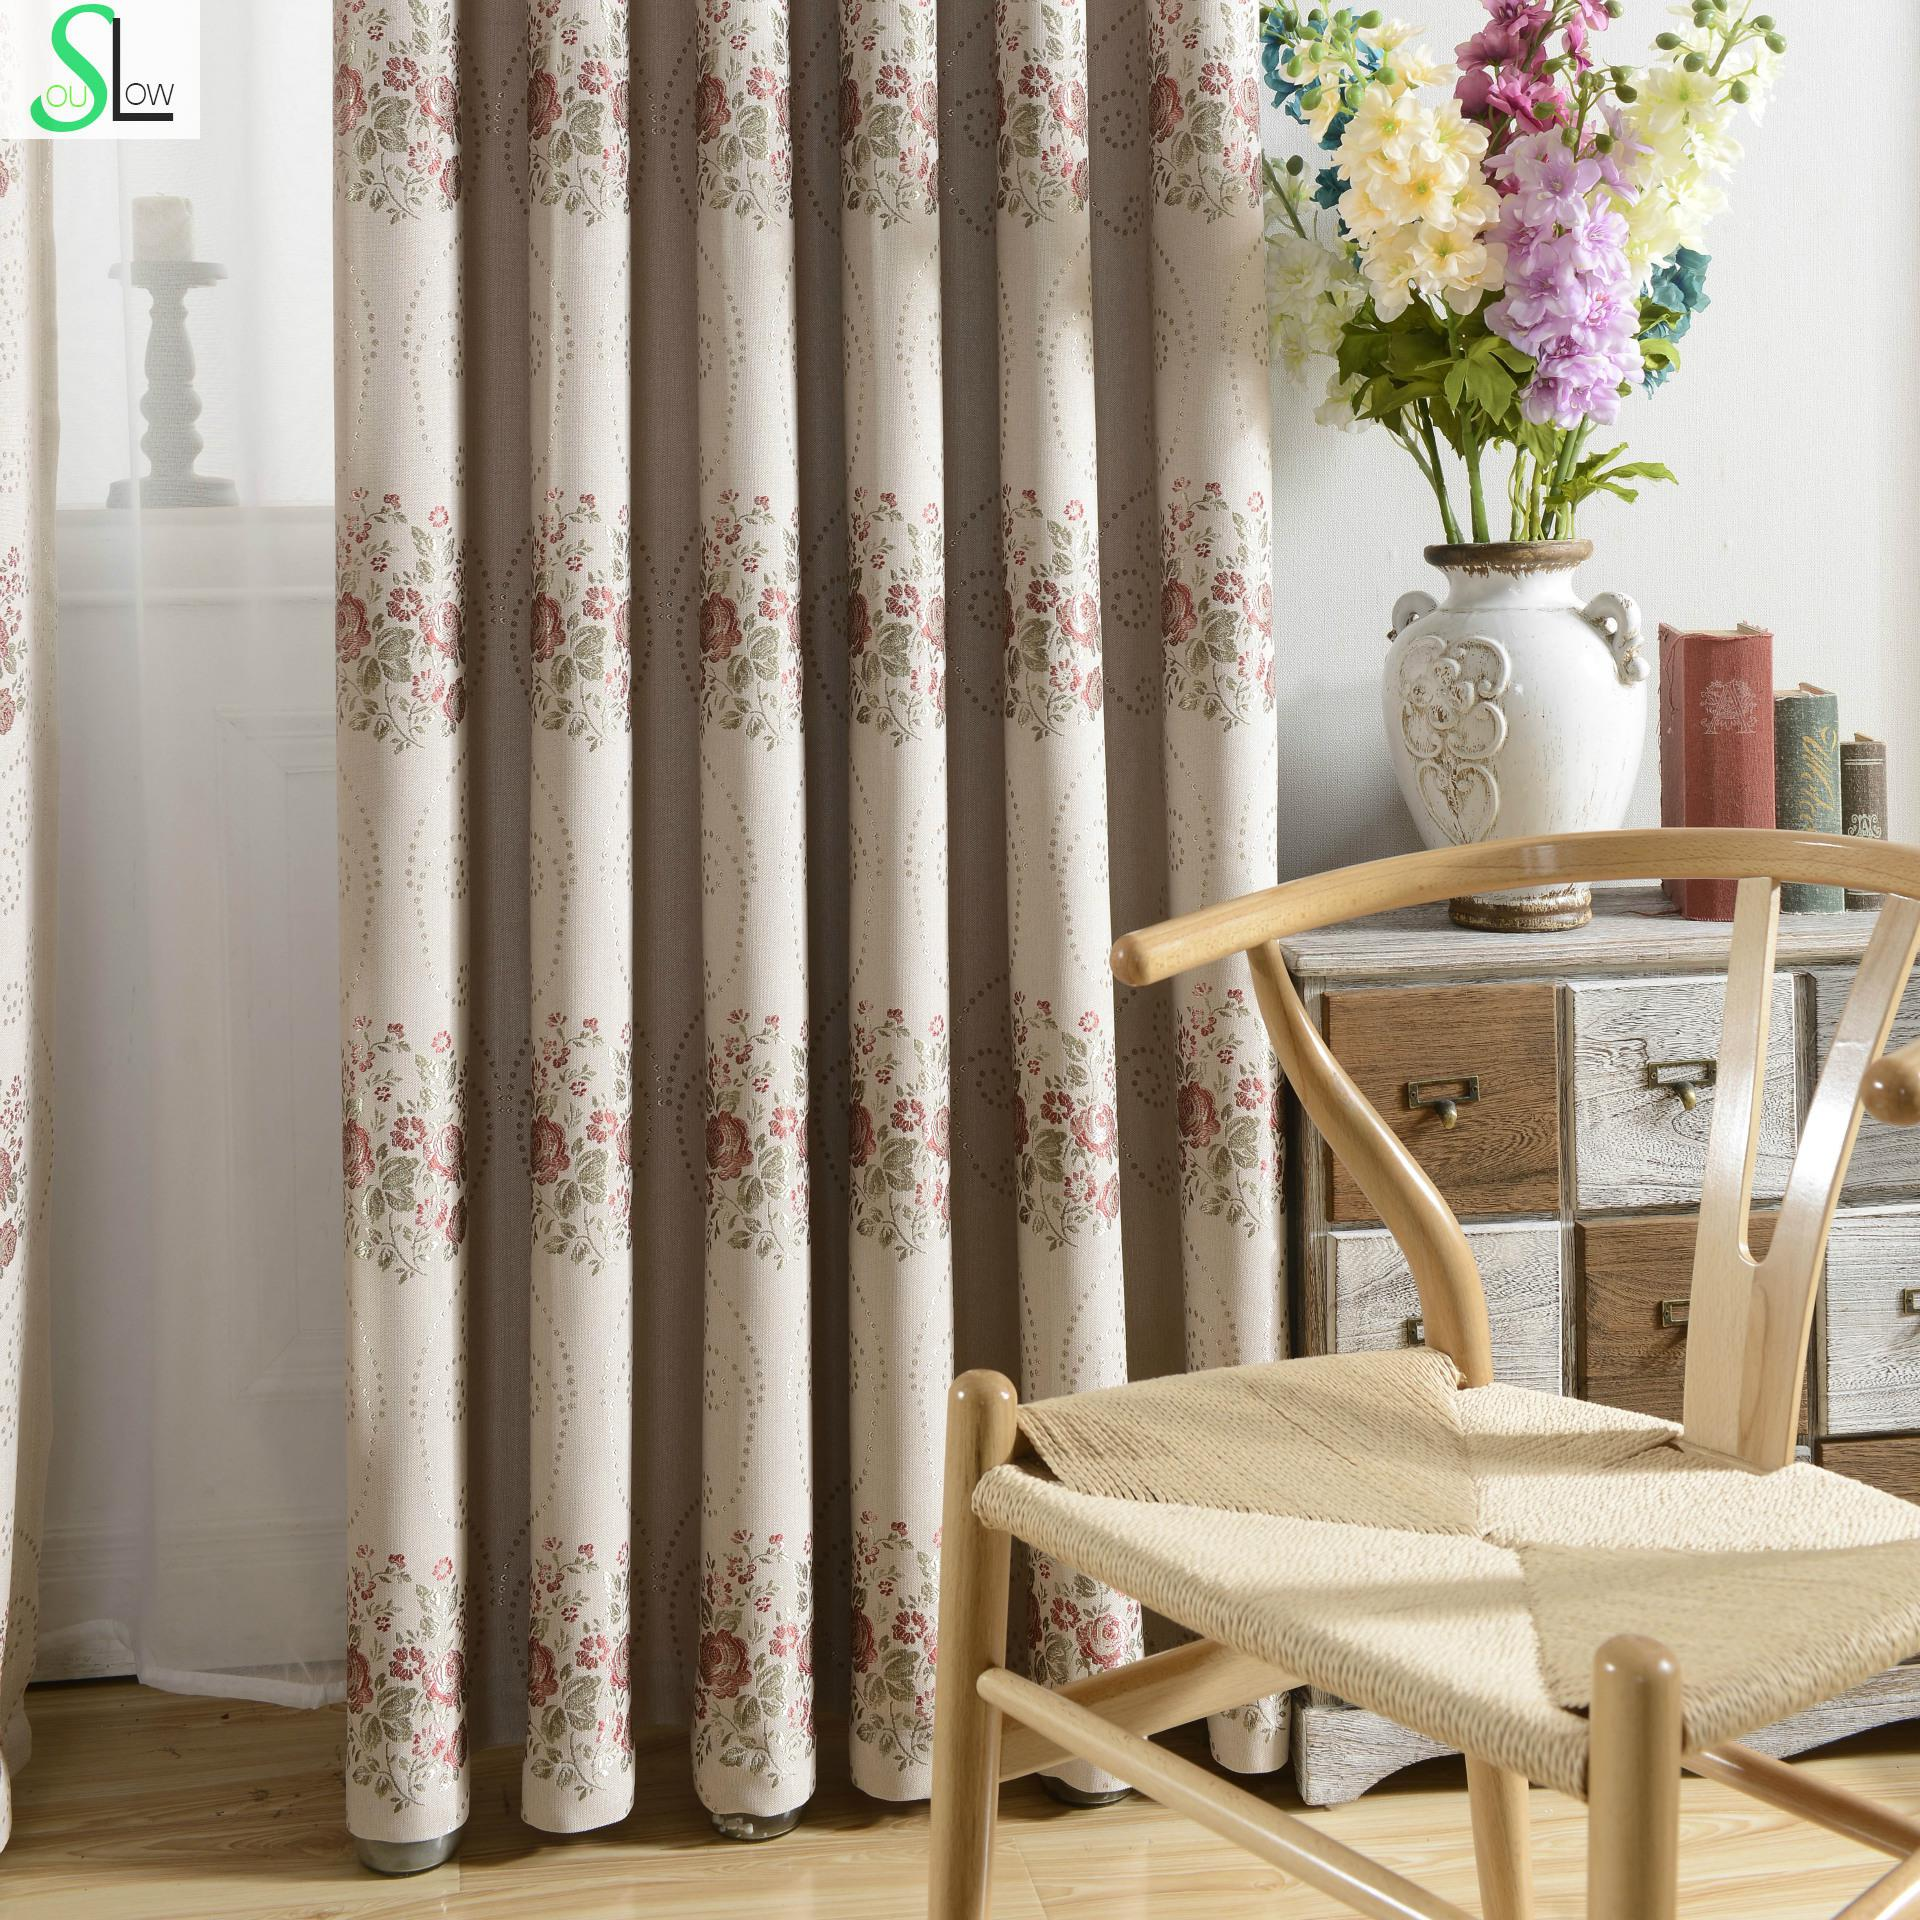 Cheap red curtains - Slow Soul Gray Red Jacquard Linen Fabric Shading Curtain Floral Curtains For Living Room Kitchen European